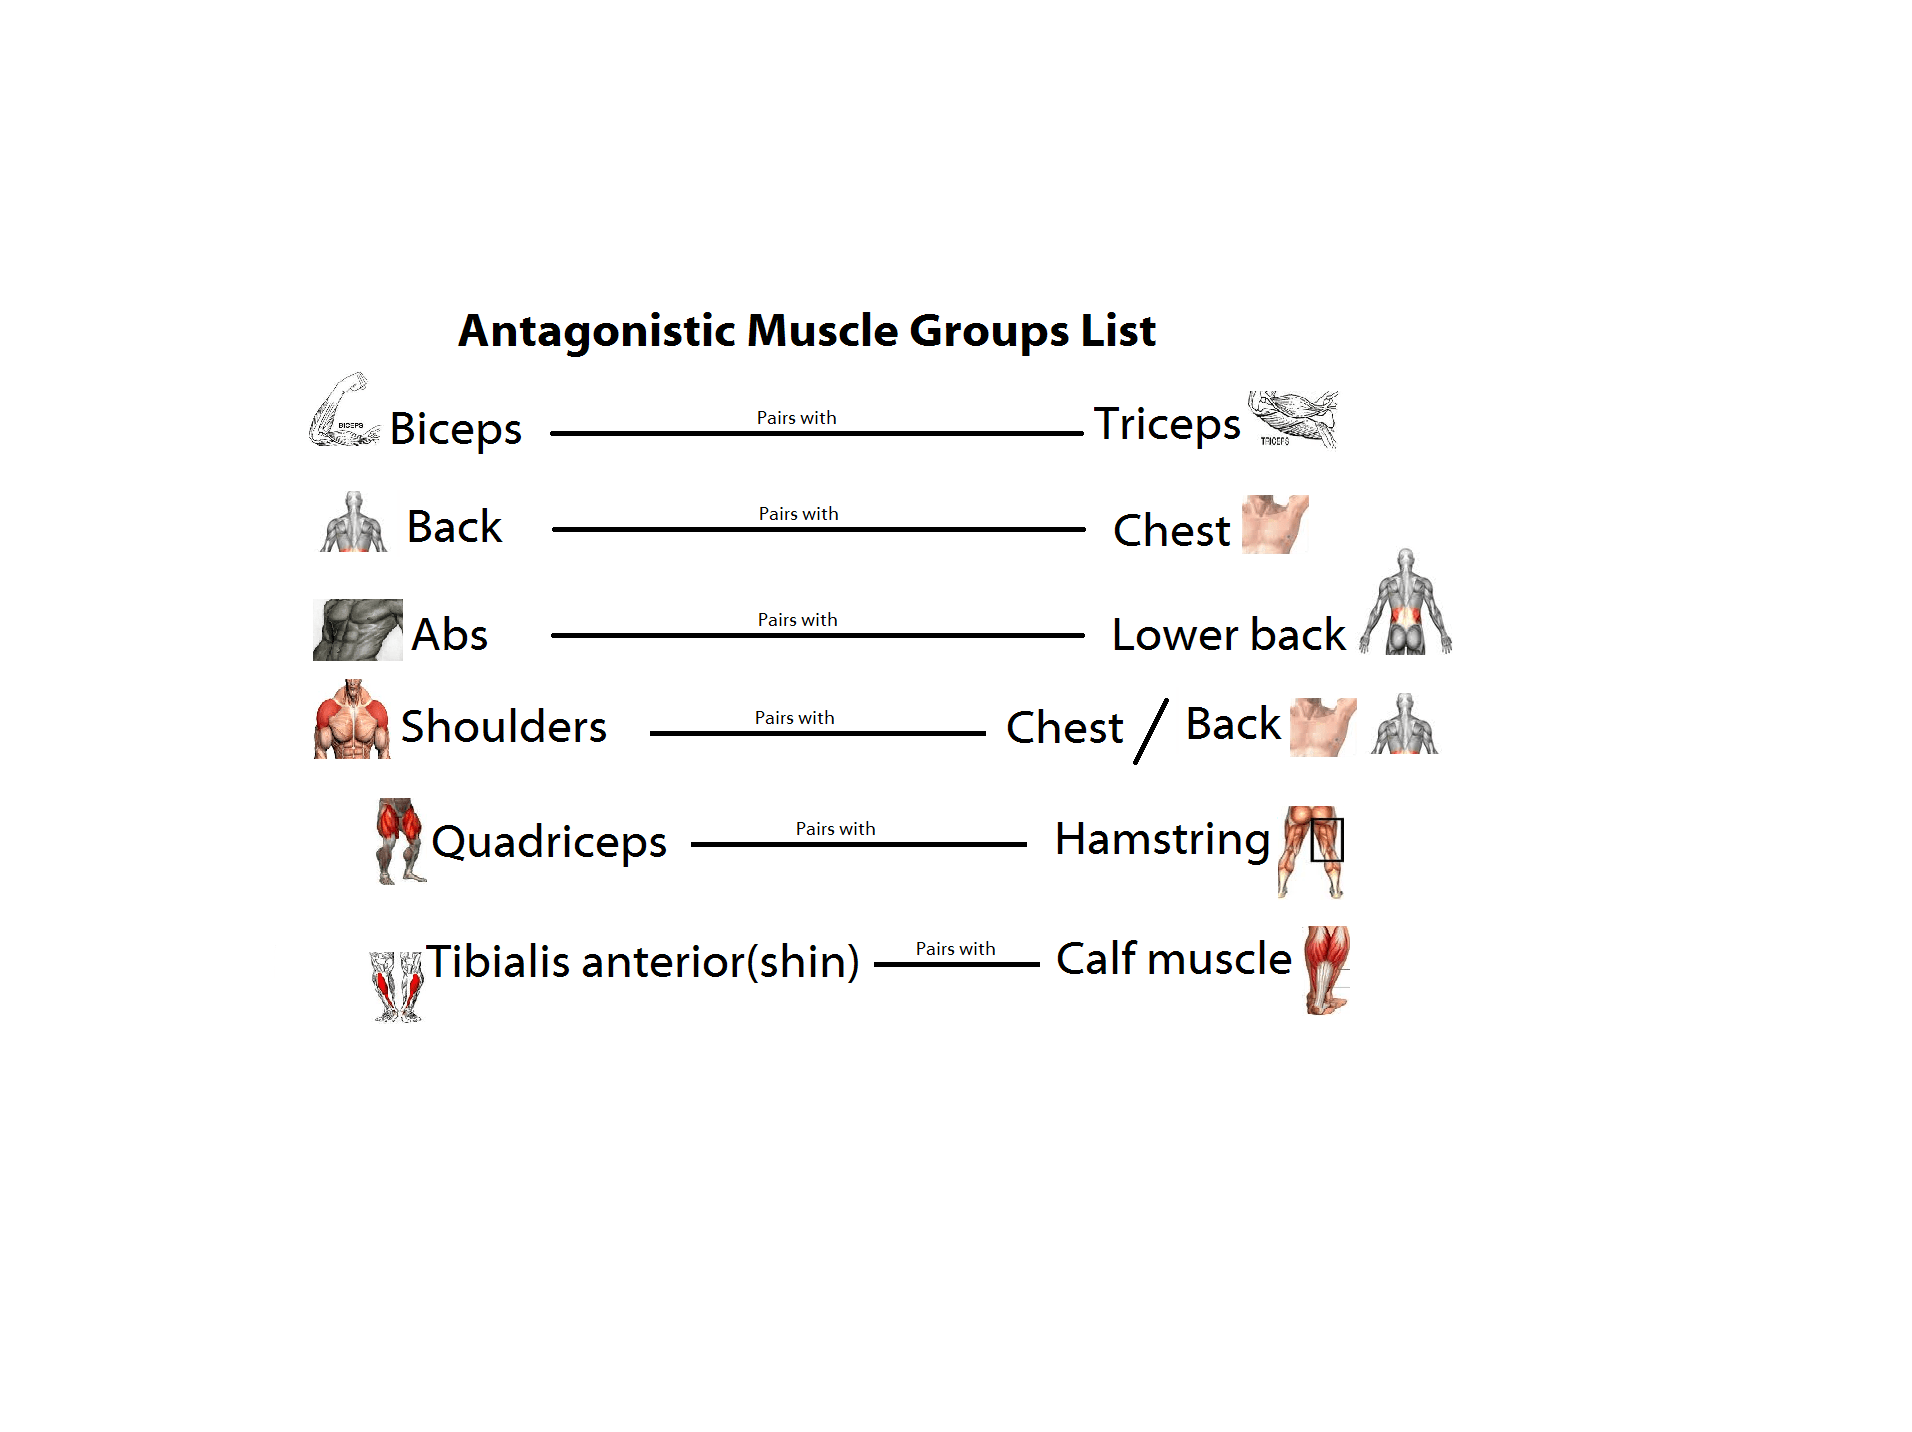 Skeletal Muscles And Antagonistic Pairs